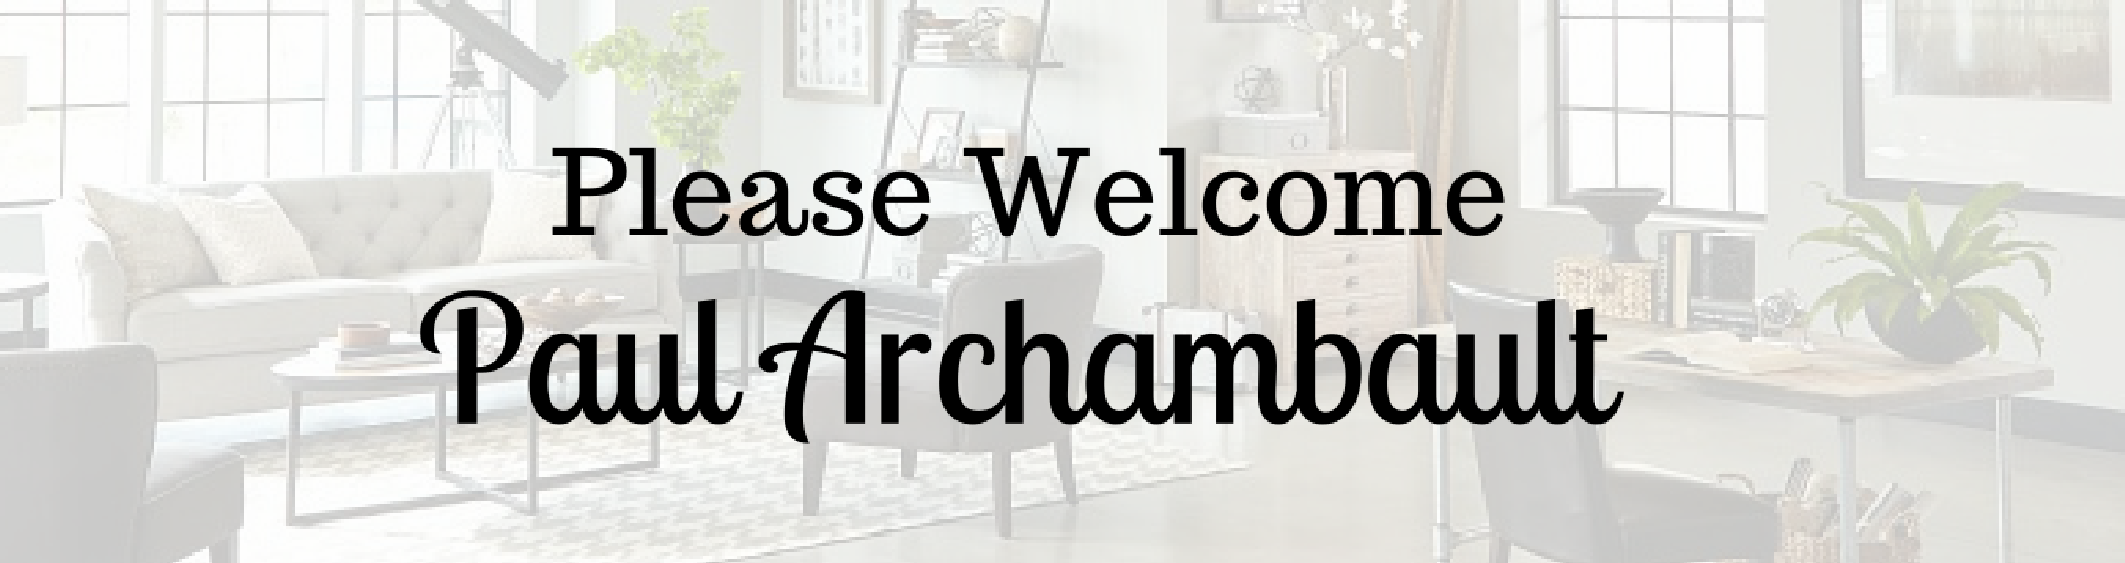 Please Welcome Paul Archambault to our Team!